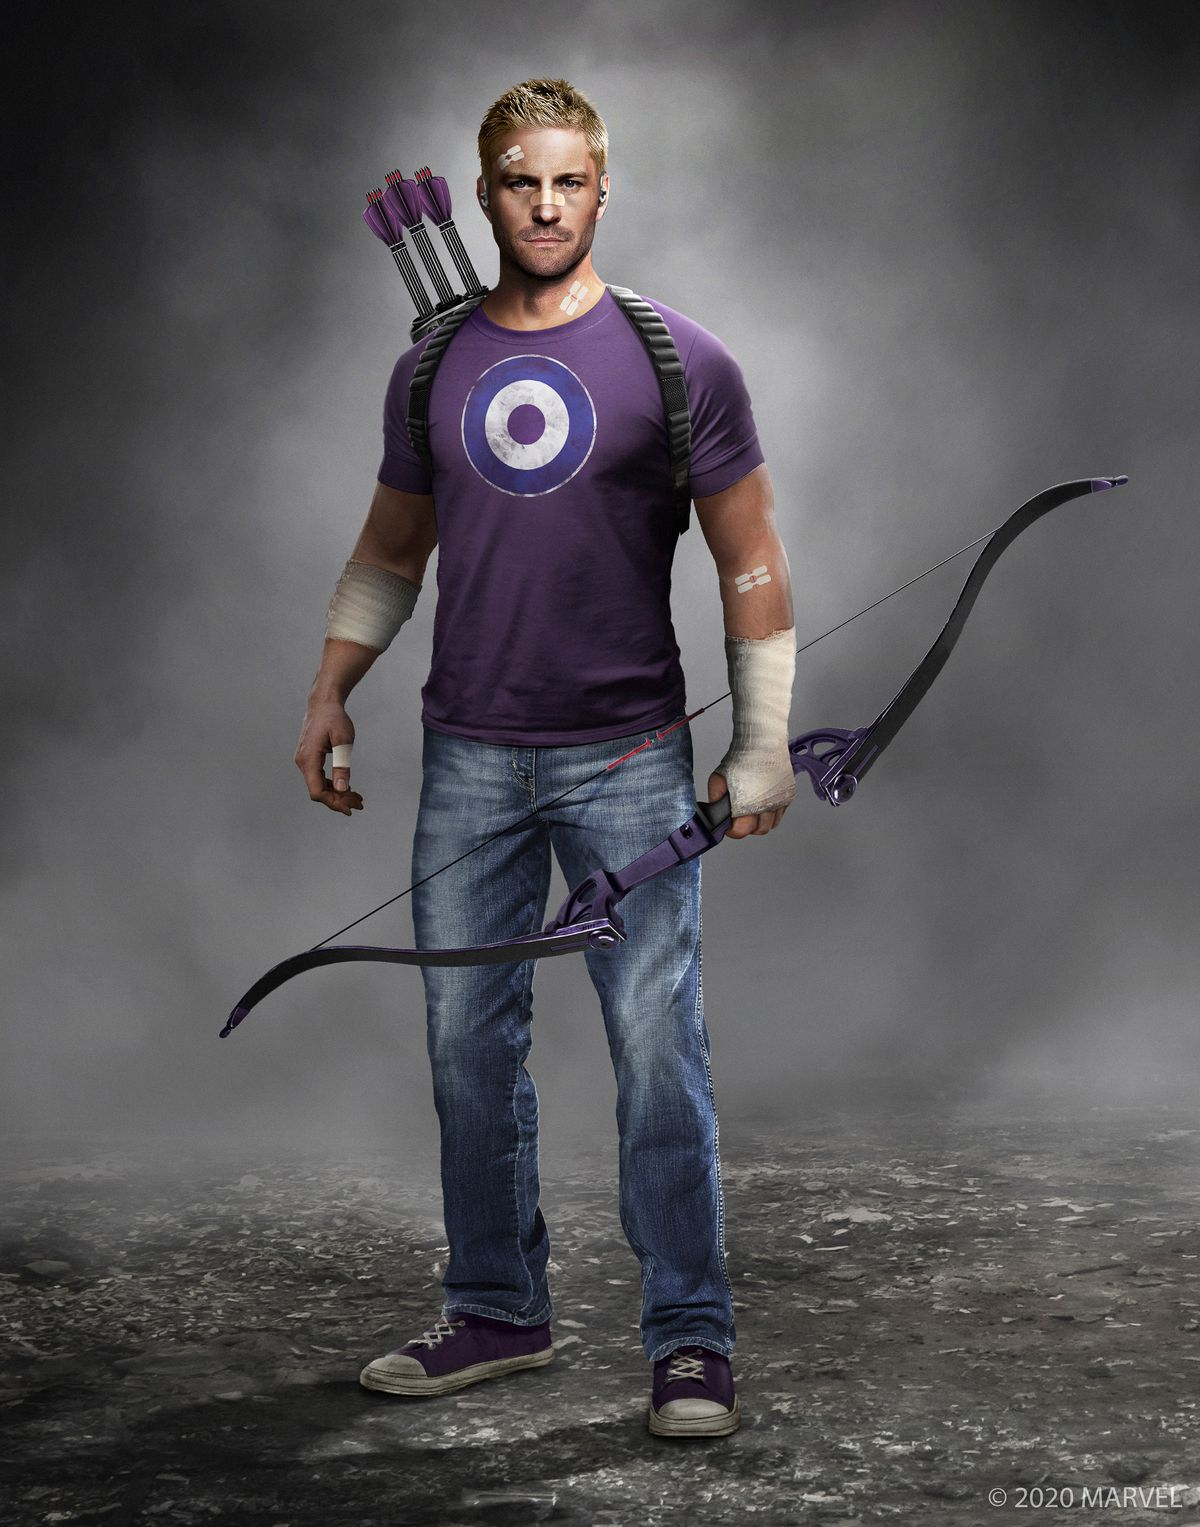 concept art of Hawkeye / Clint Barton in Marvel's Avengers, wearing a purple T-shirt with a bullseye on it and blue jeans, holding a purple bow in his left hand with a quiver slung on his back holding three purple arrows